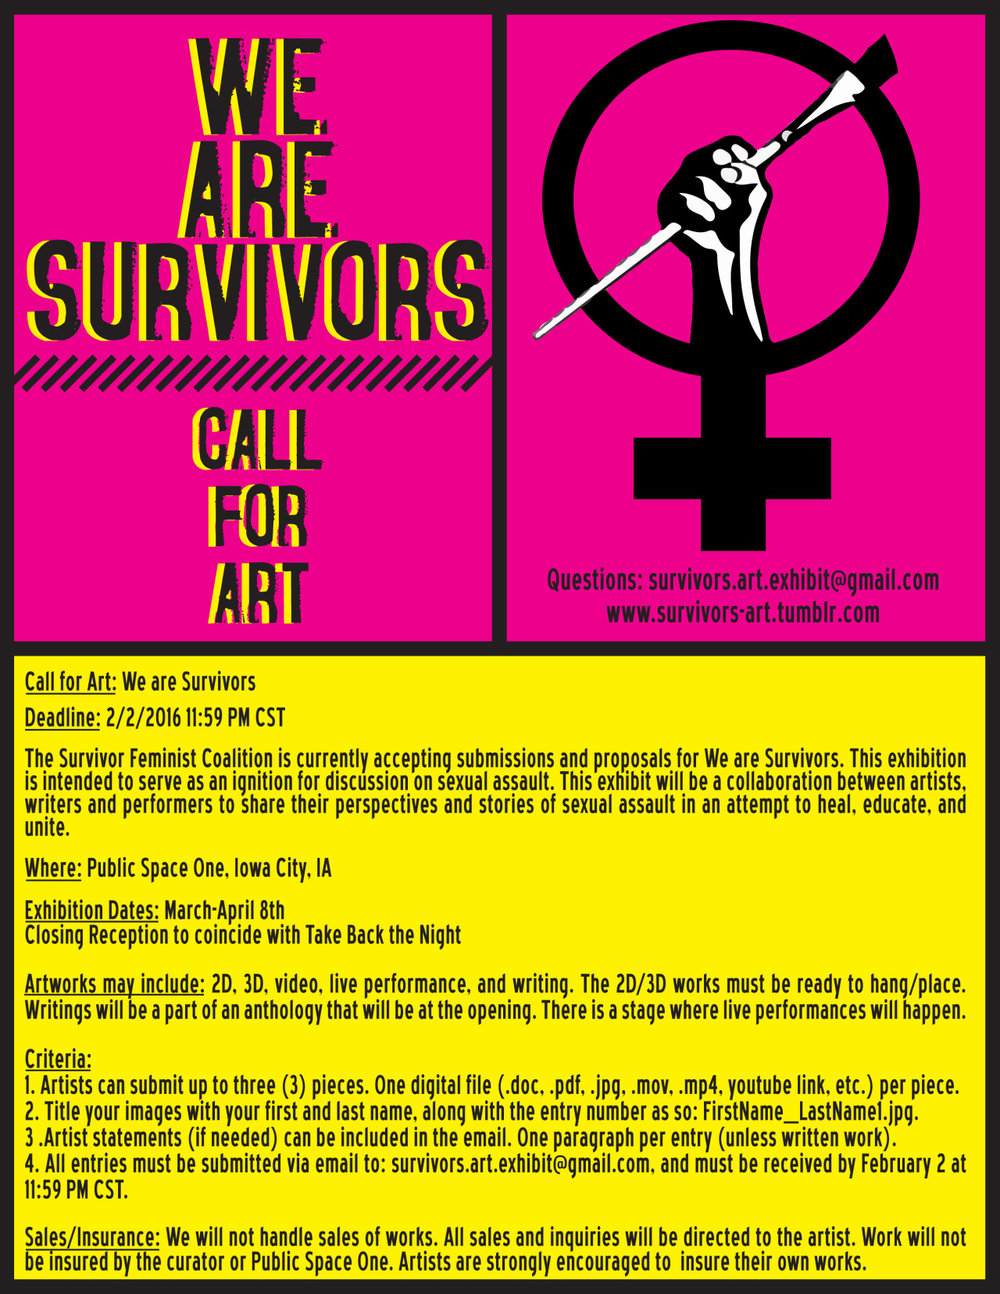 survivors-art :     Prospectus for the show We are Survivors– Apply! Apply! Apply!      The Feminist Coalition is currently seeking art/performance/writing for the exhibit We are Survivors! This exhibition is an ignition for discussion on sexual assault. We are Survivors will be a collaboration between artists, writers and performers to share their perspectives and stories of sexual assault in an attempt to heal, educate, and unite.  The show will be at Public Space One in Iowa City in March.